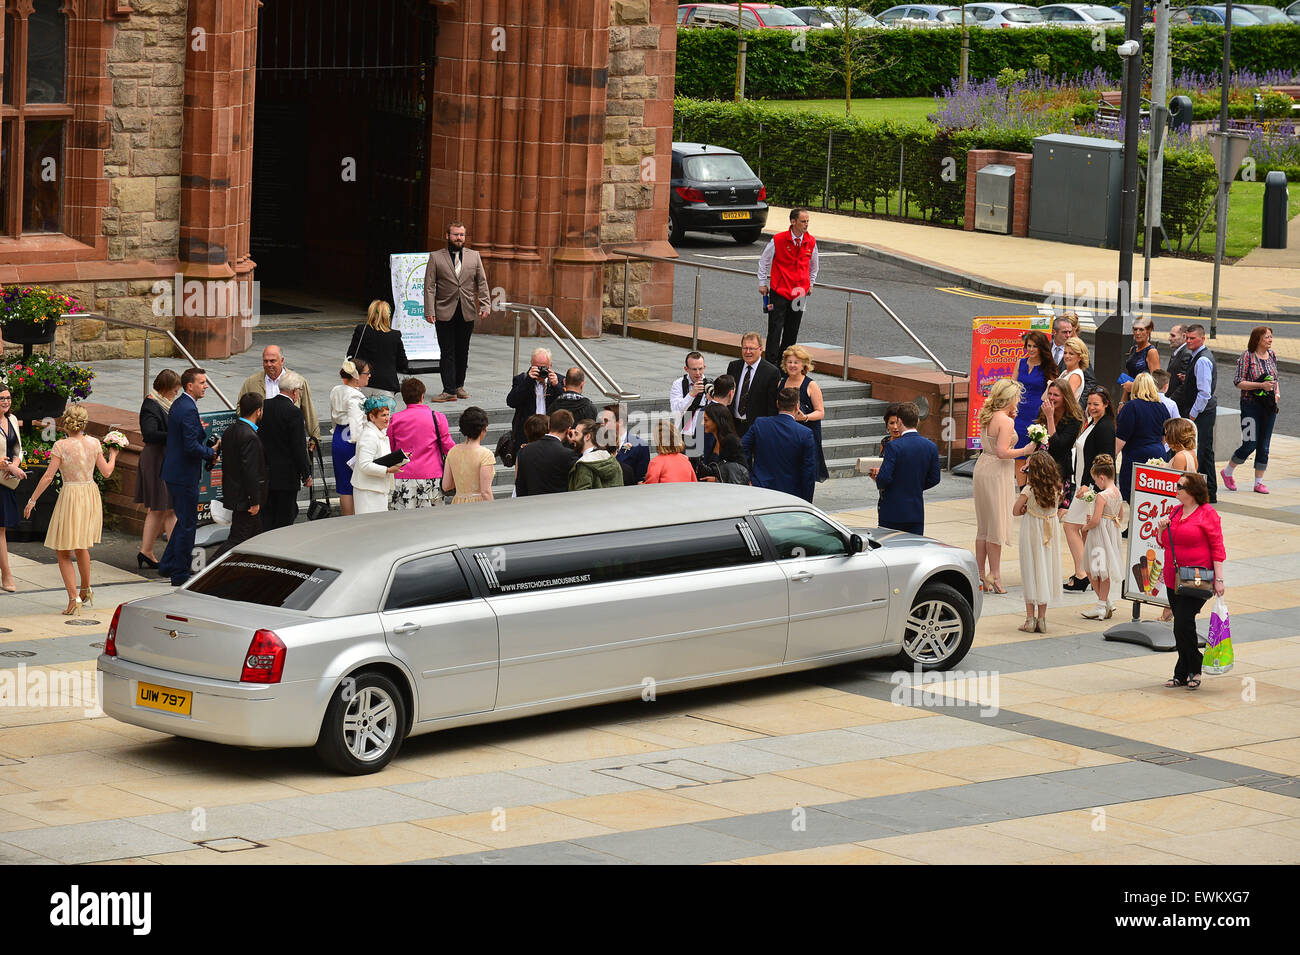 Wedding grout arrives by 8 seater silver Chrysler Stretch Limousine at the Guildhall, Derry, Londonderry, Northern - Stock Image